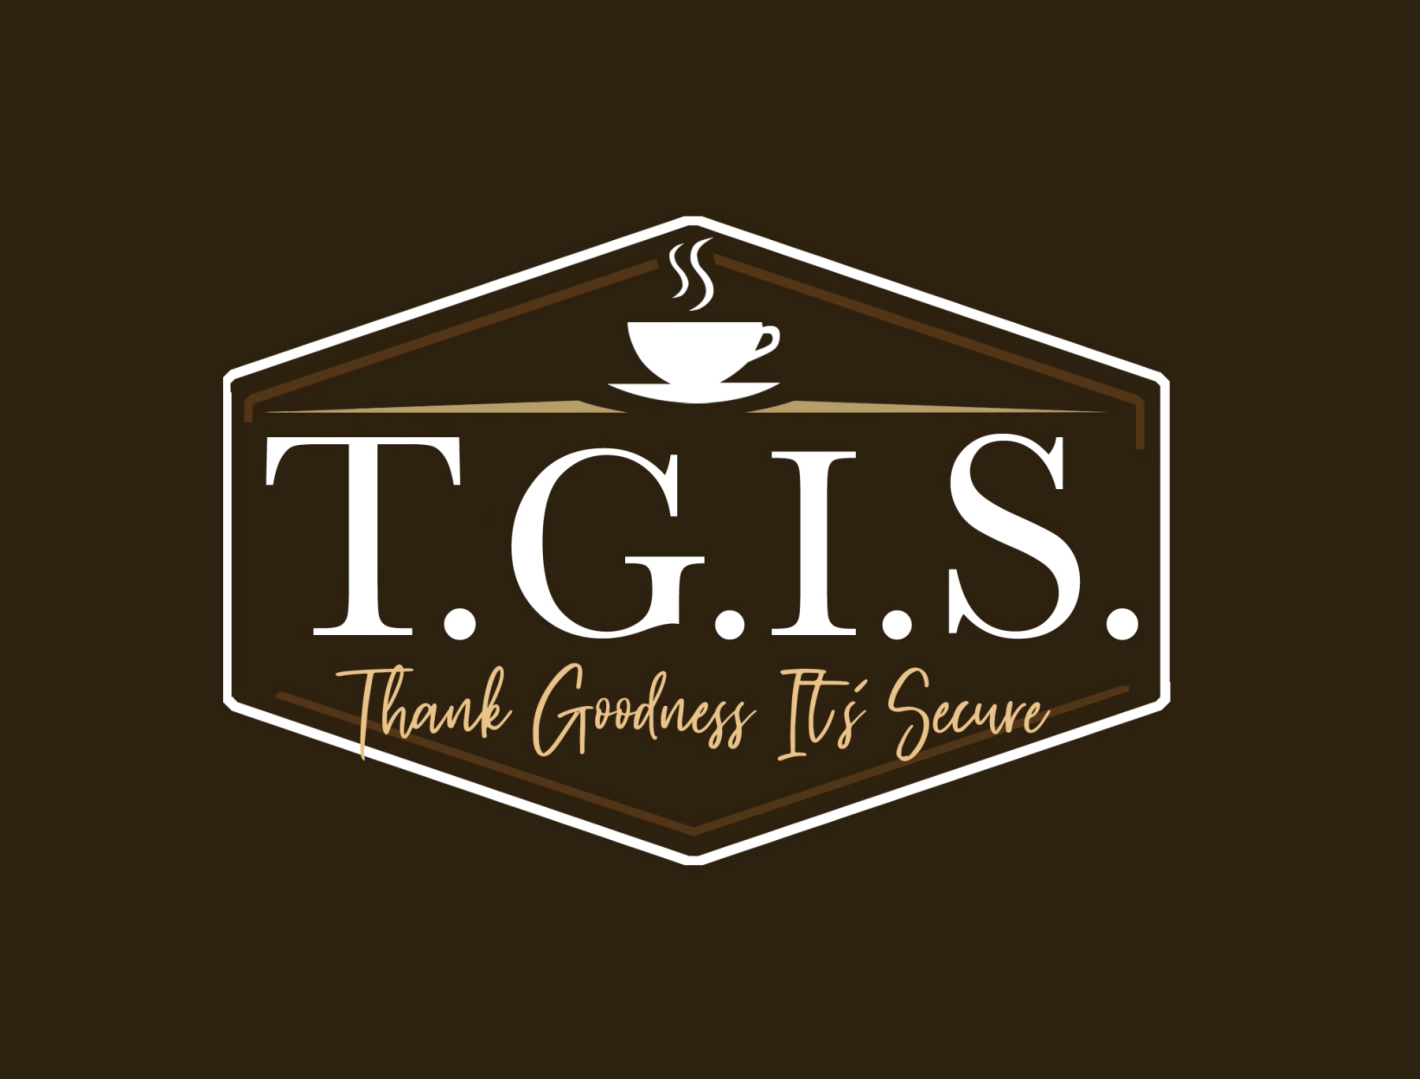 TGIS_Cover_2.png